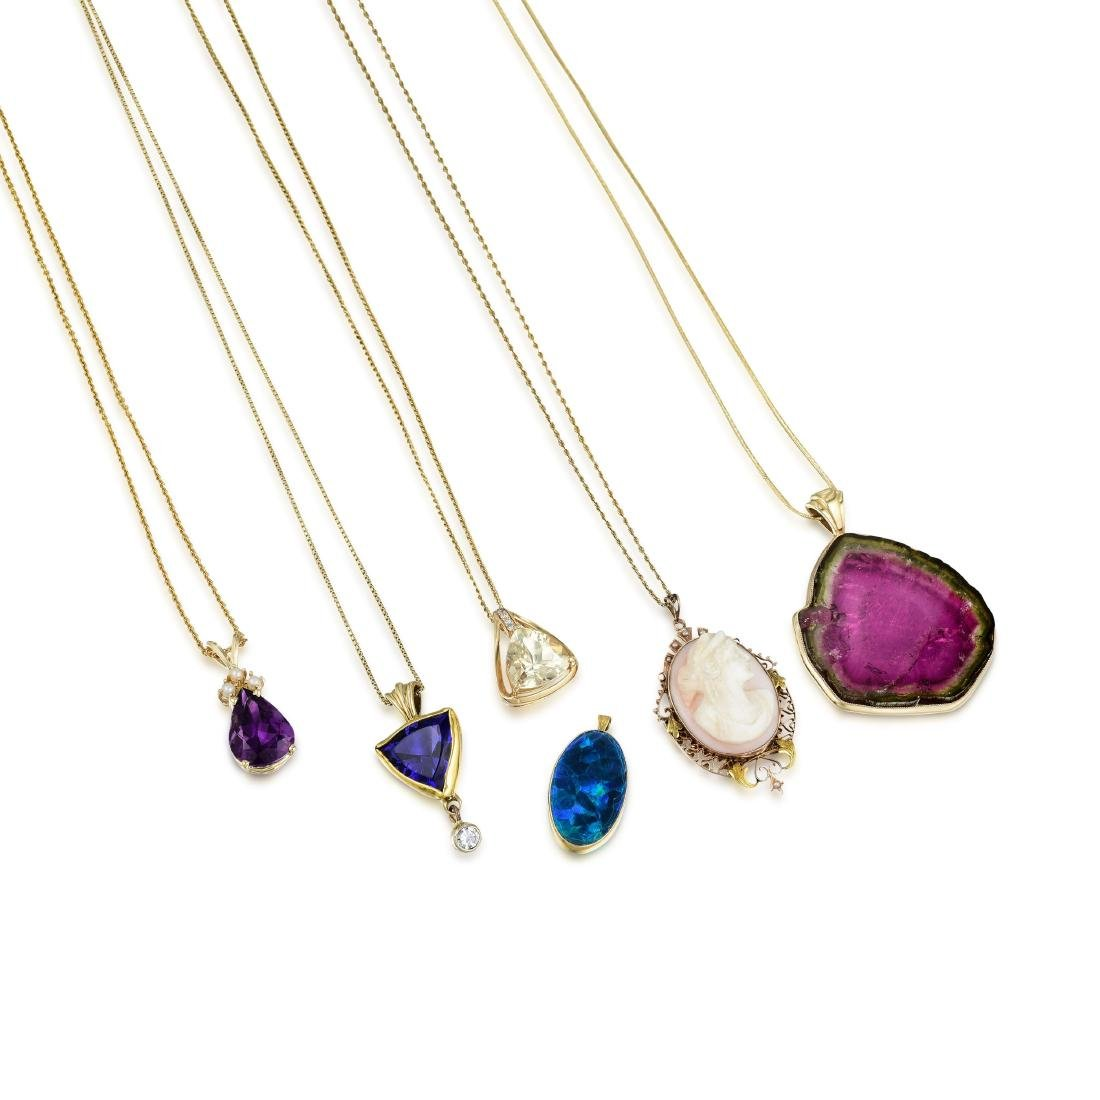 A Group of 14K Gold Gemstone Jewelry